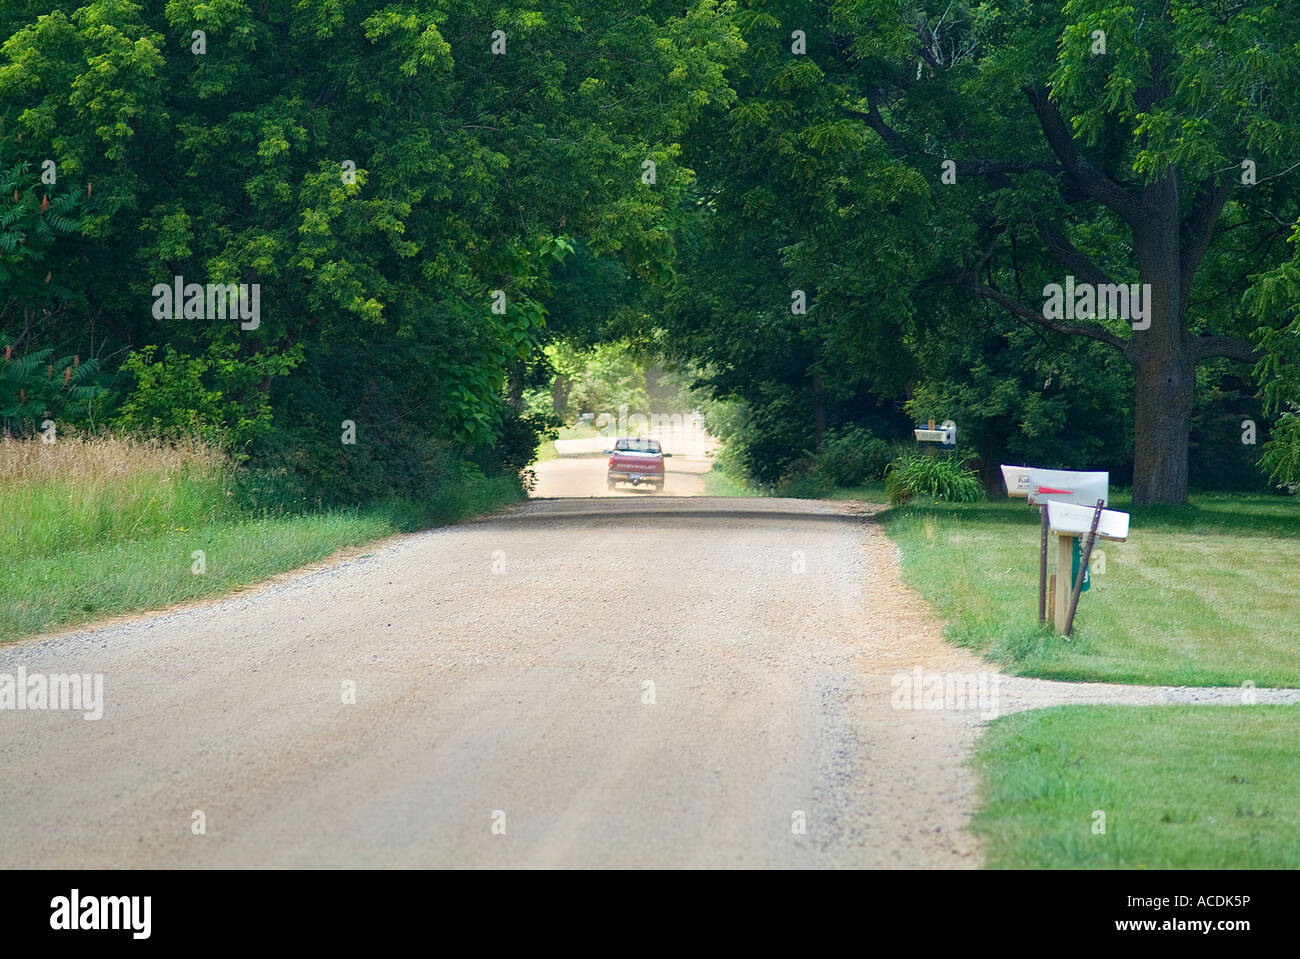 Pickup Truck Lorry On Dirt Country Road, Rural Michigan USA - Stock Image